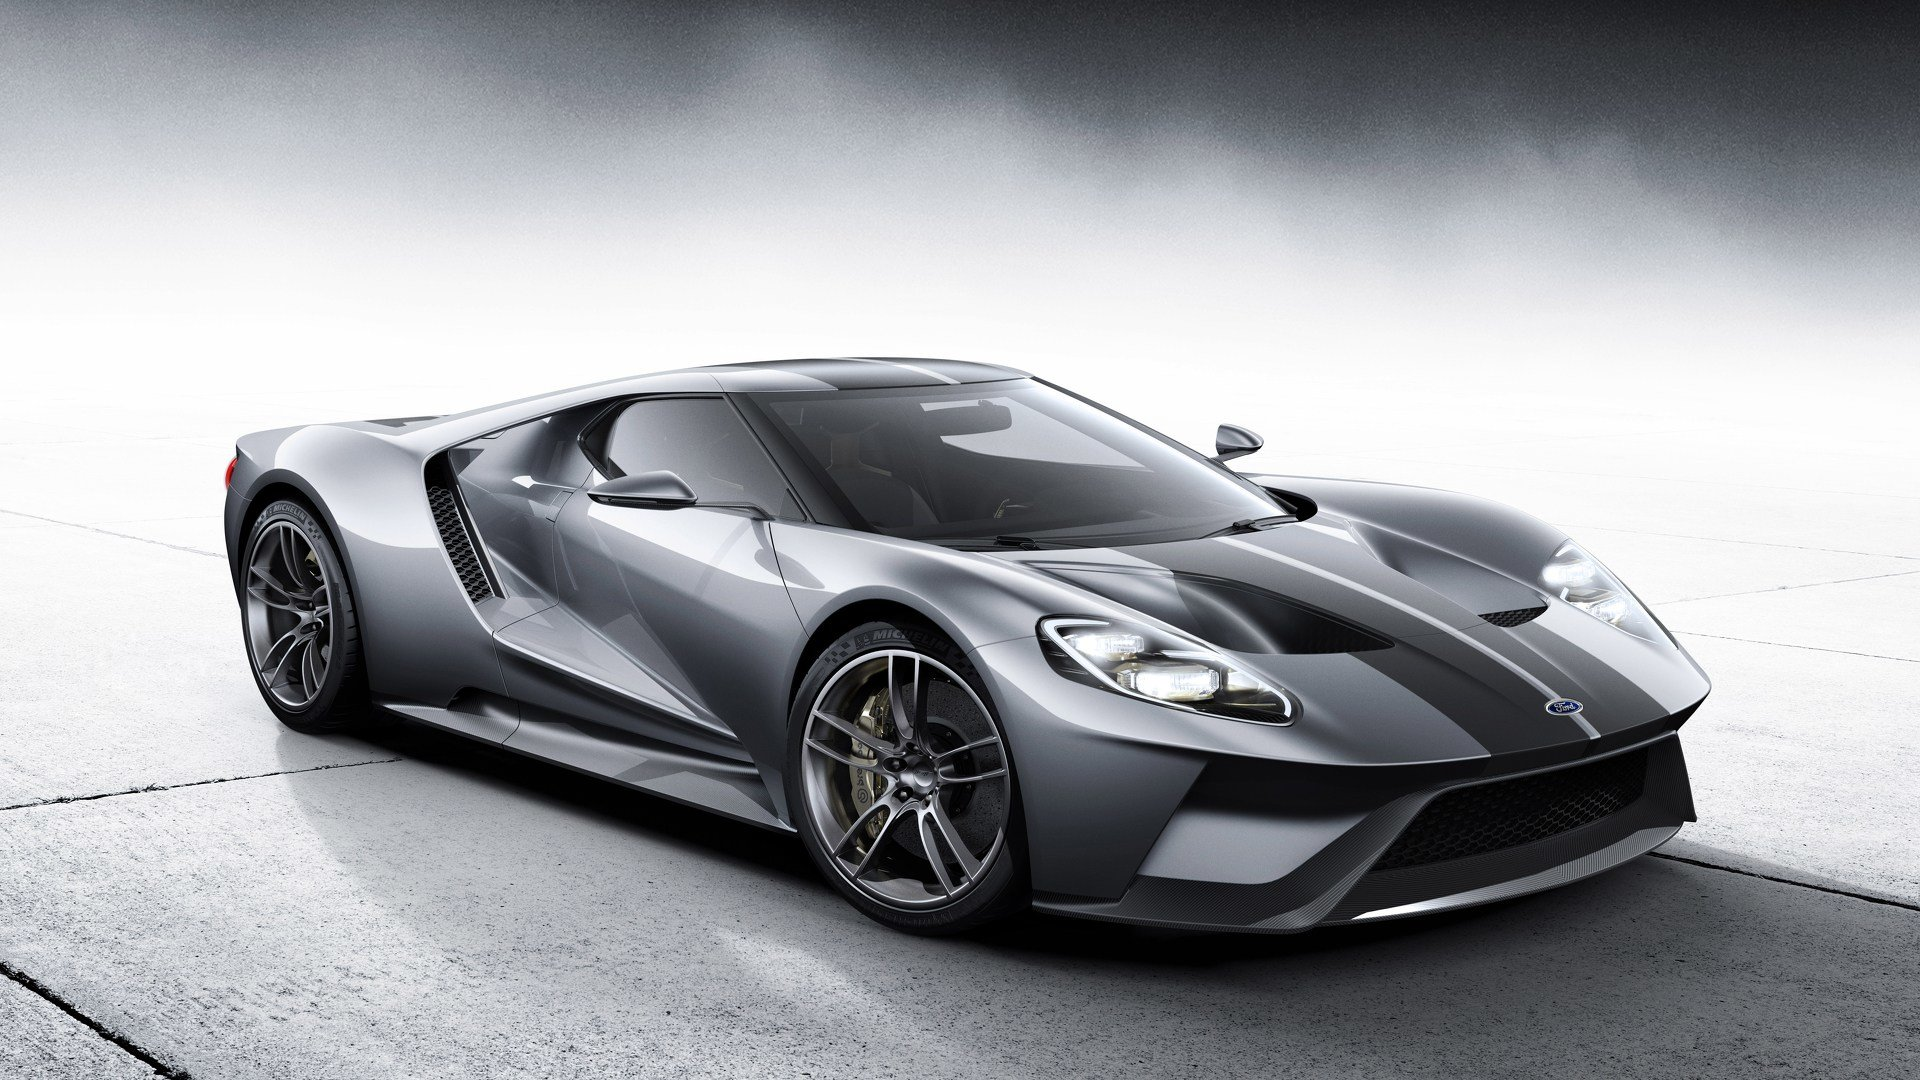 New Ford Gt News And Reviews Motor1 Com On This Month